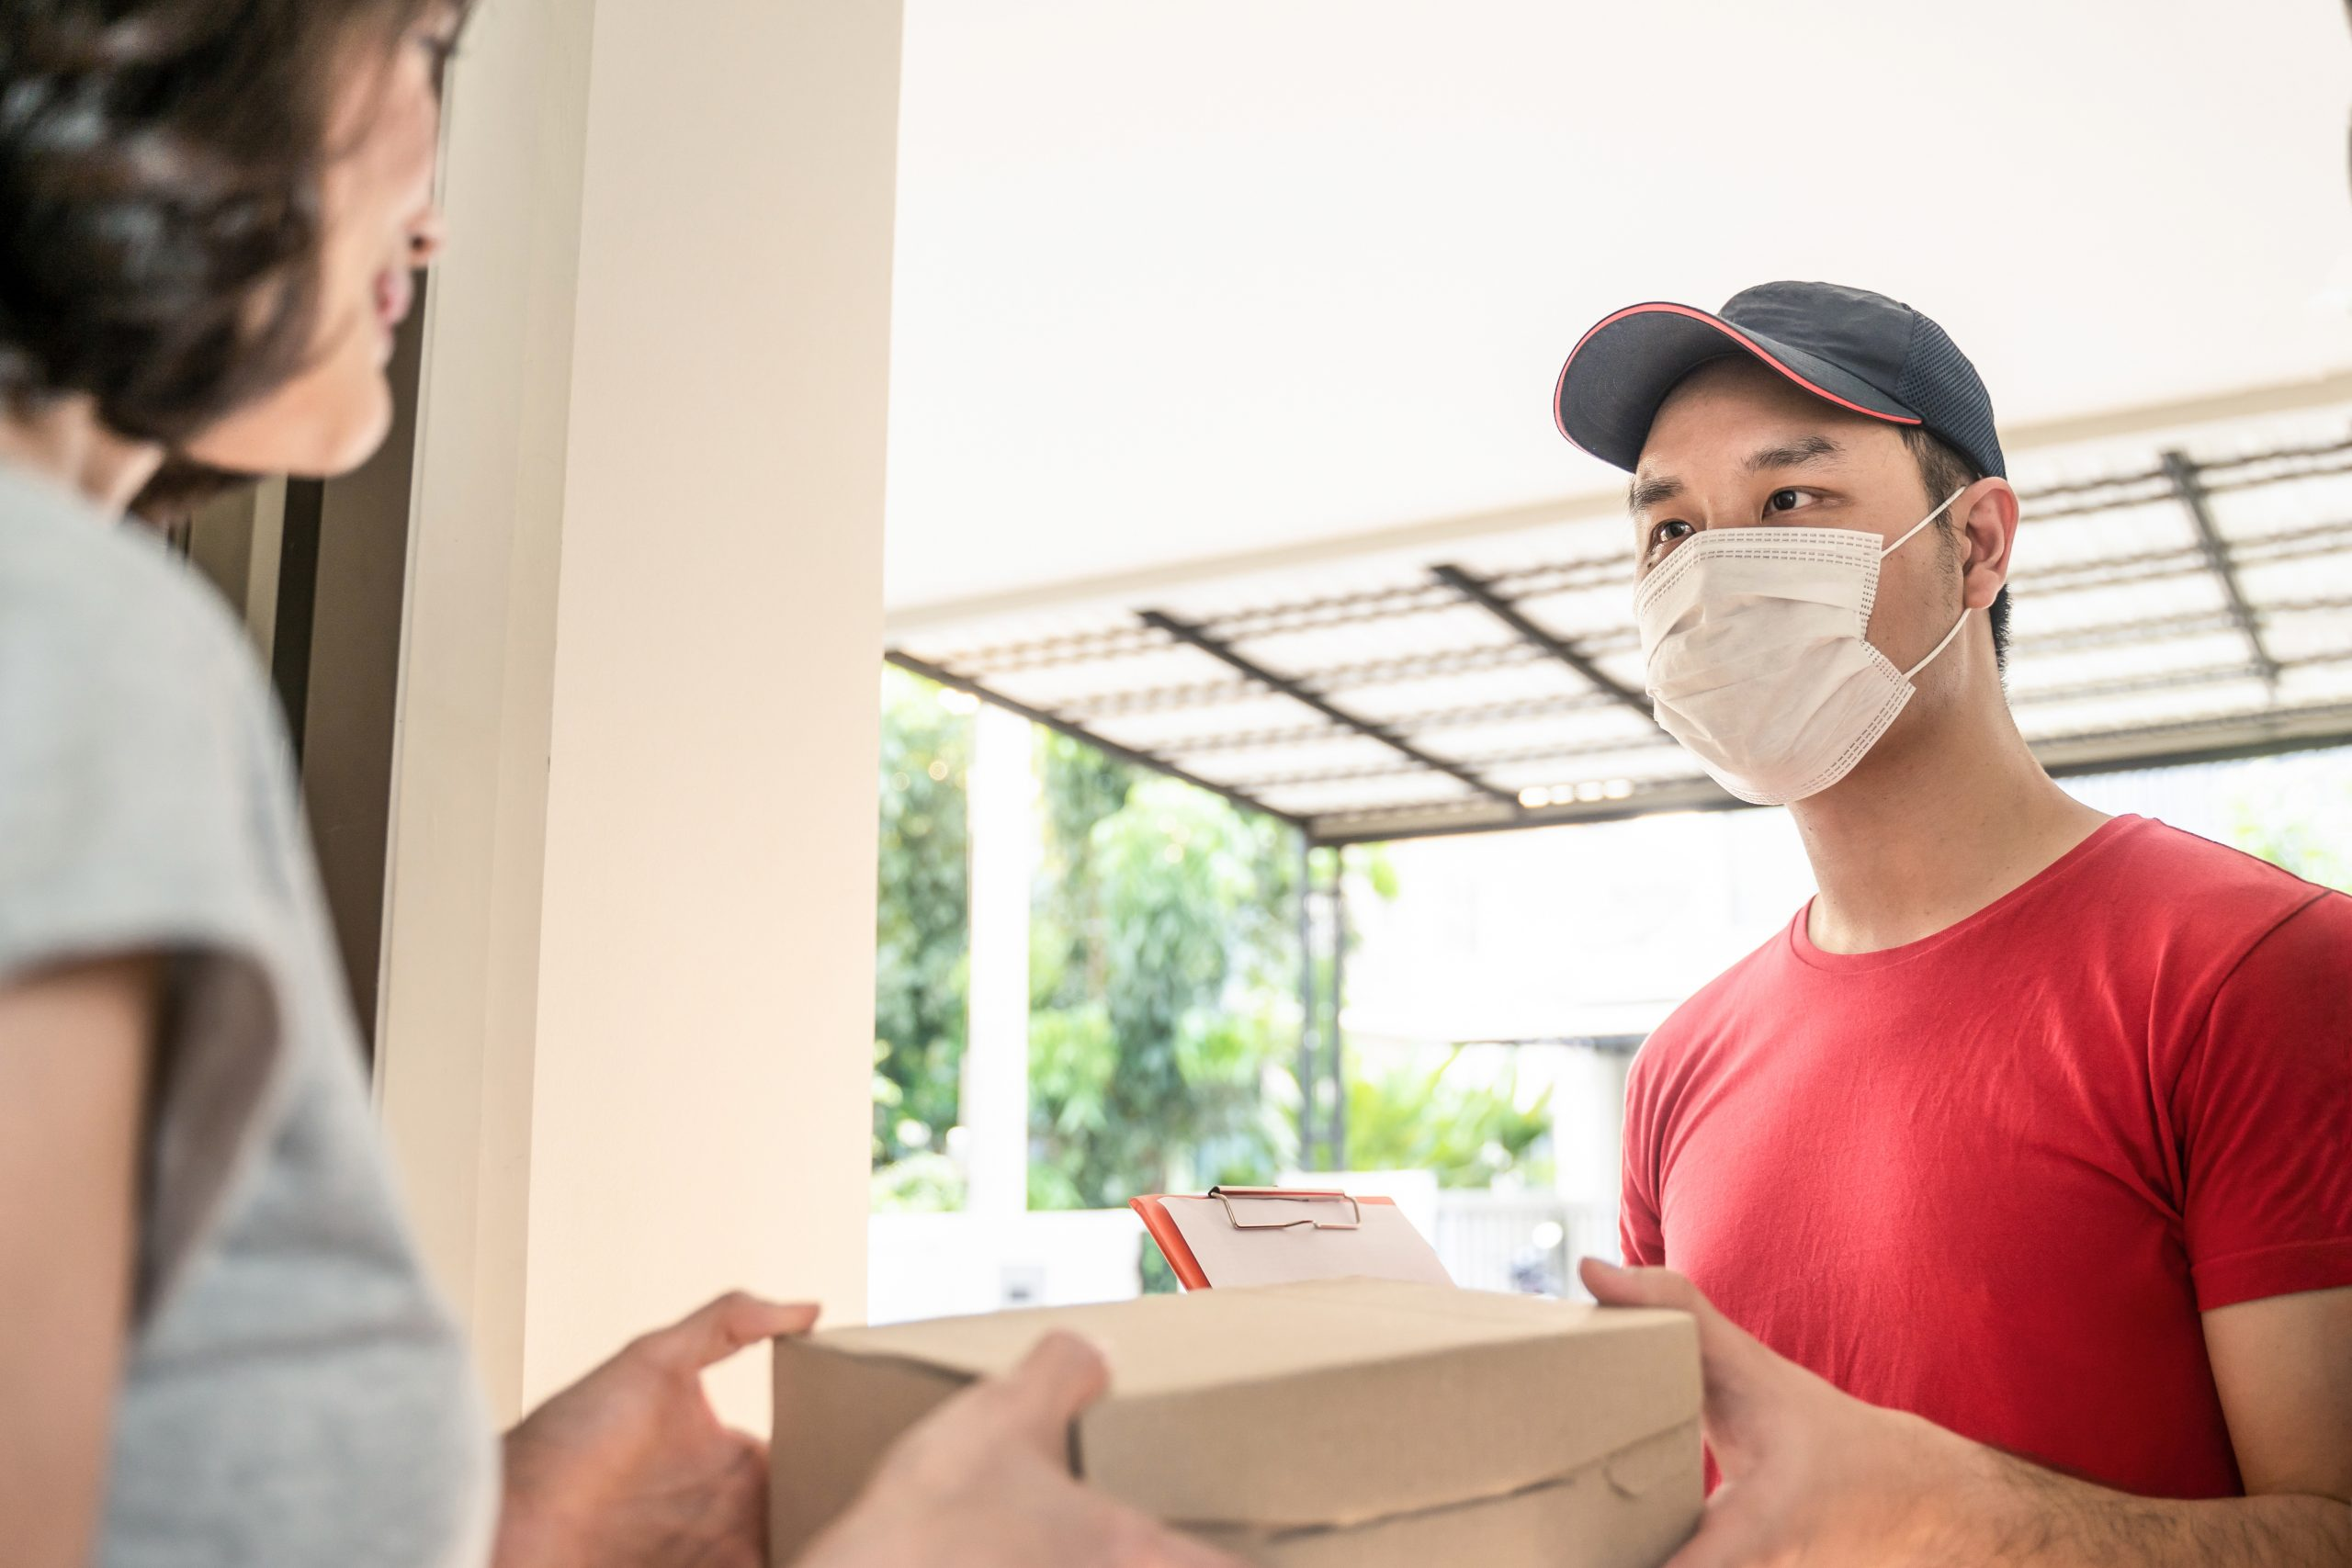 Asian postman or deliveryman carry small box deliver to young woman customer in front of door at home. Man wearing mask prevent covid or coranavirus affection outbreak. Social distancing work concept.